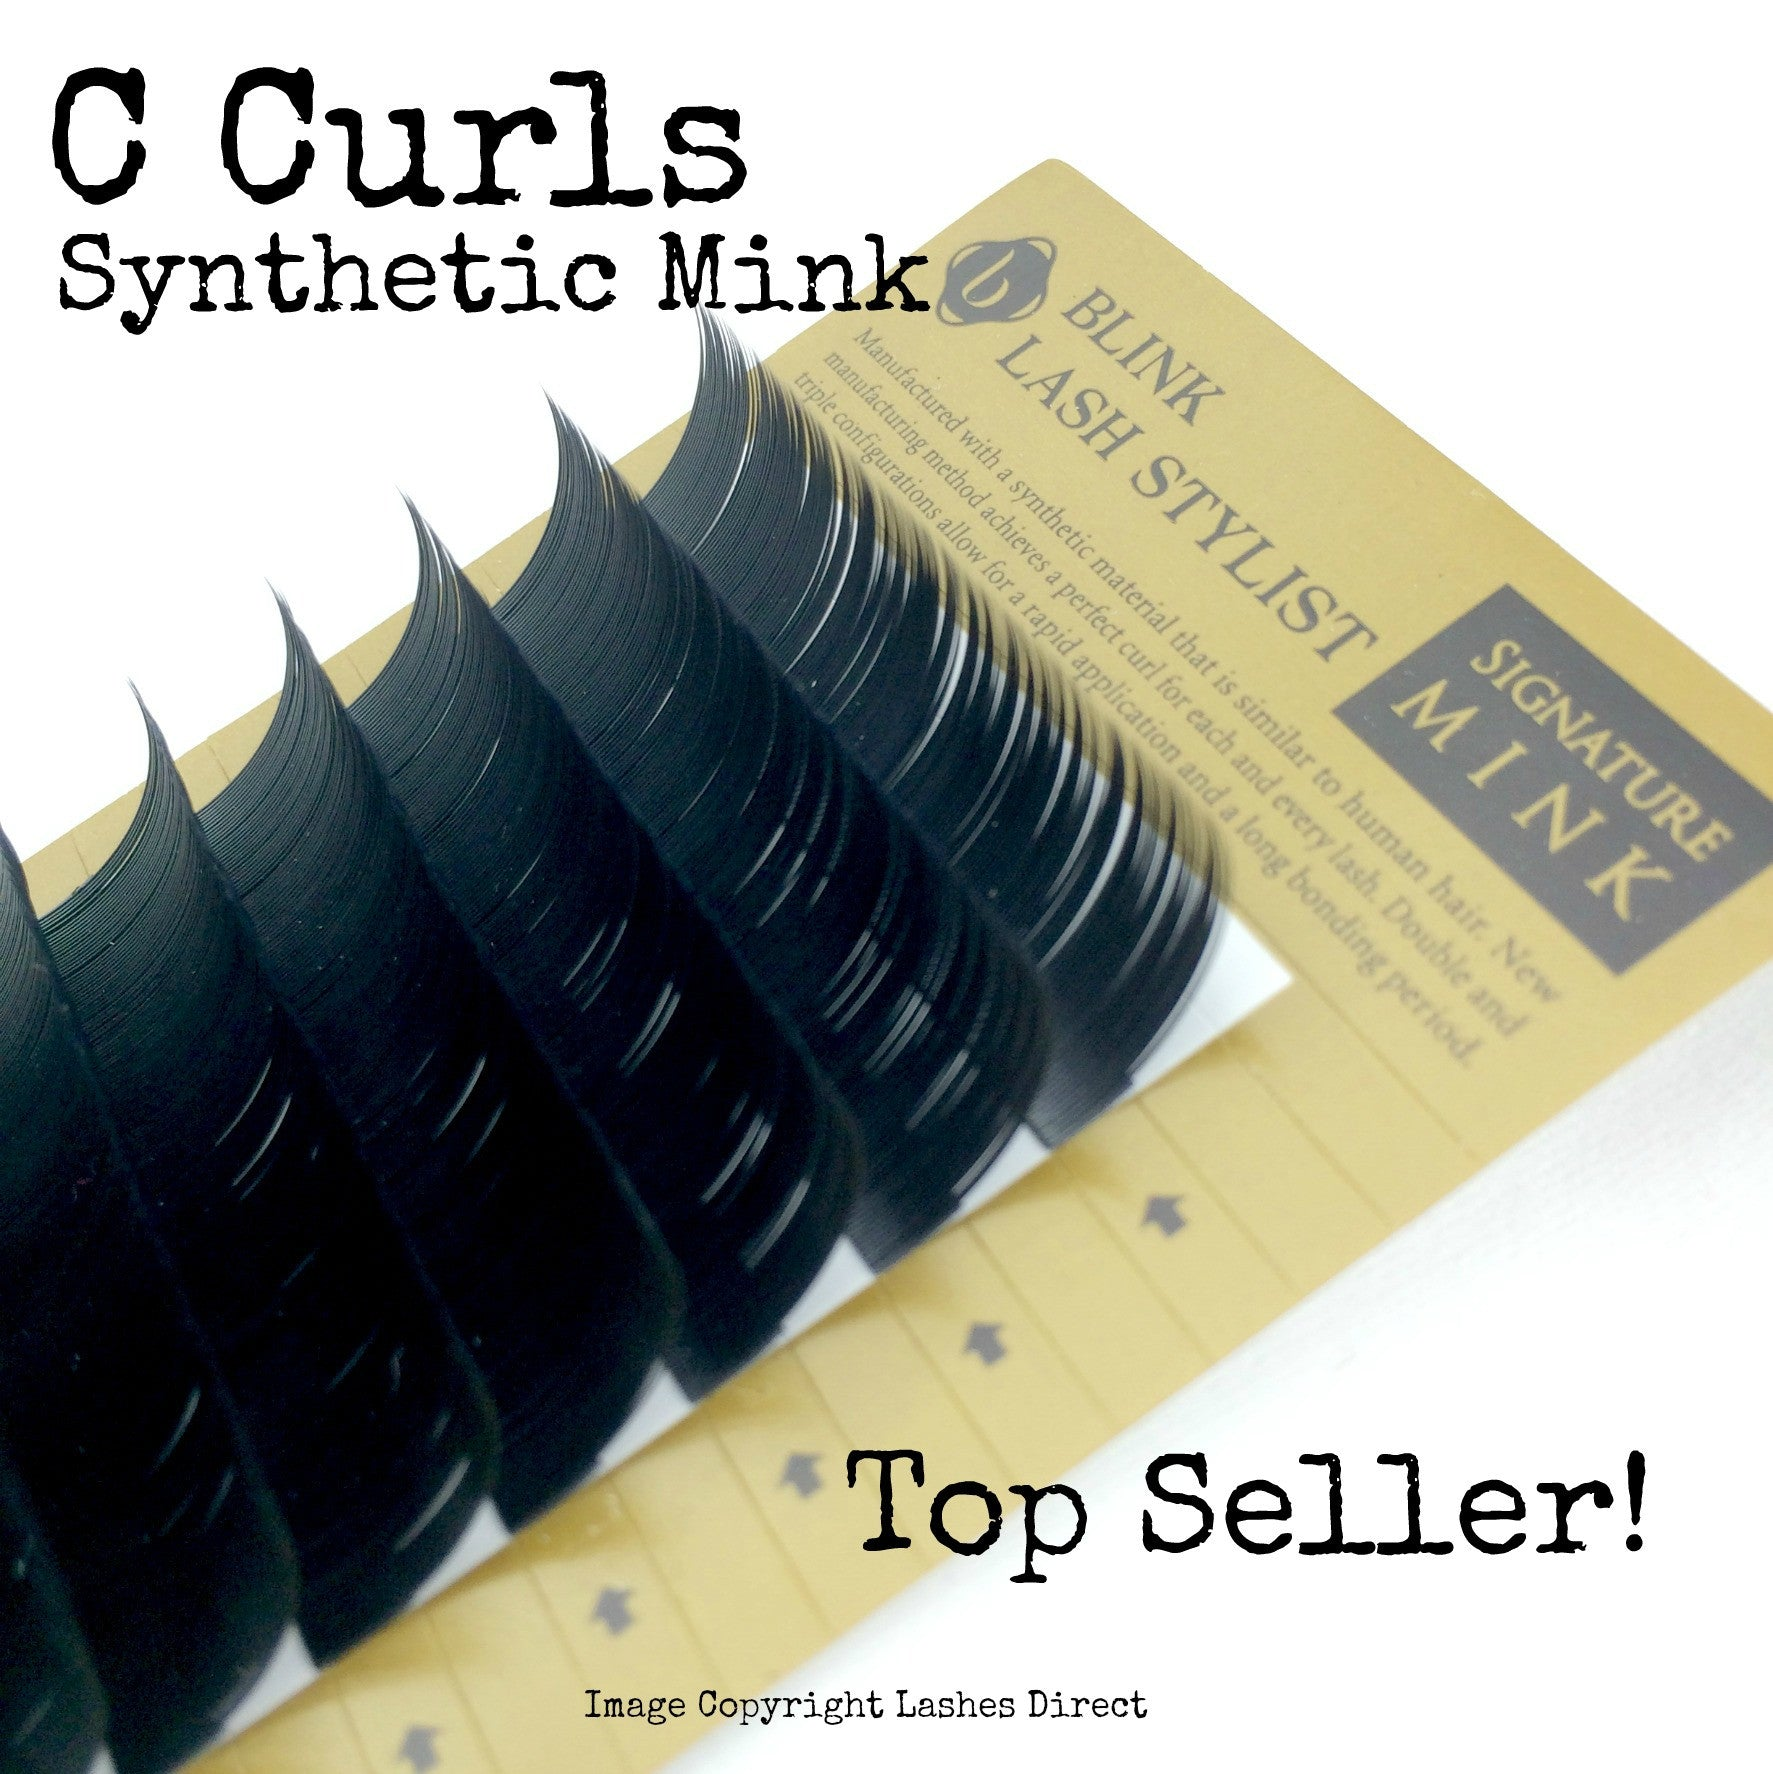 Blink Signature Mink Eyelash Extension Lash Tray: C-CURL